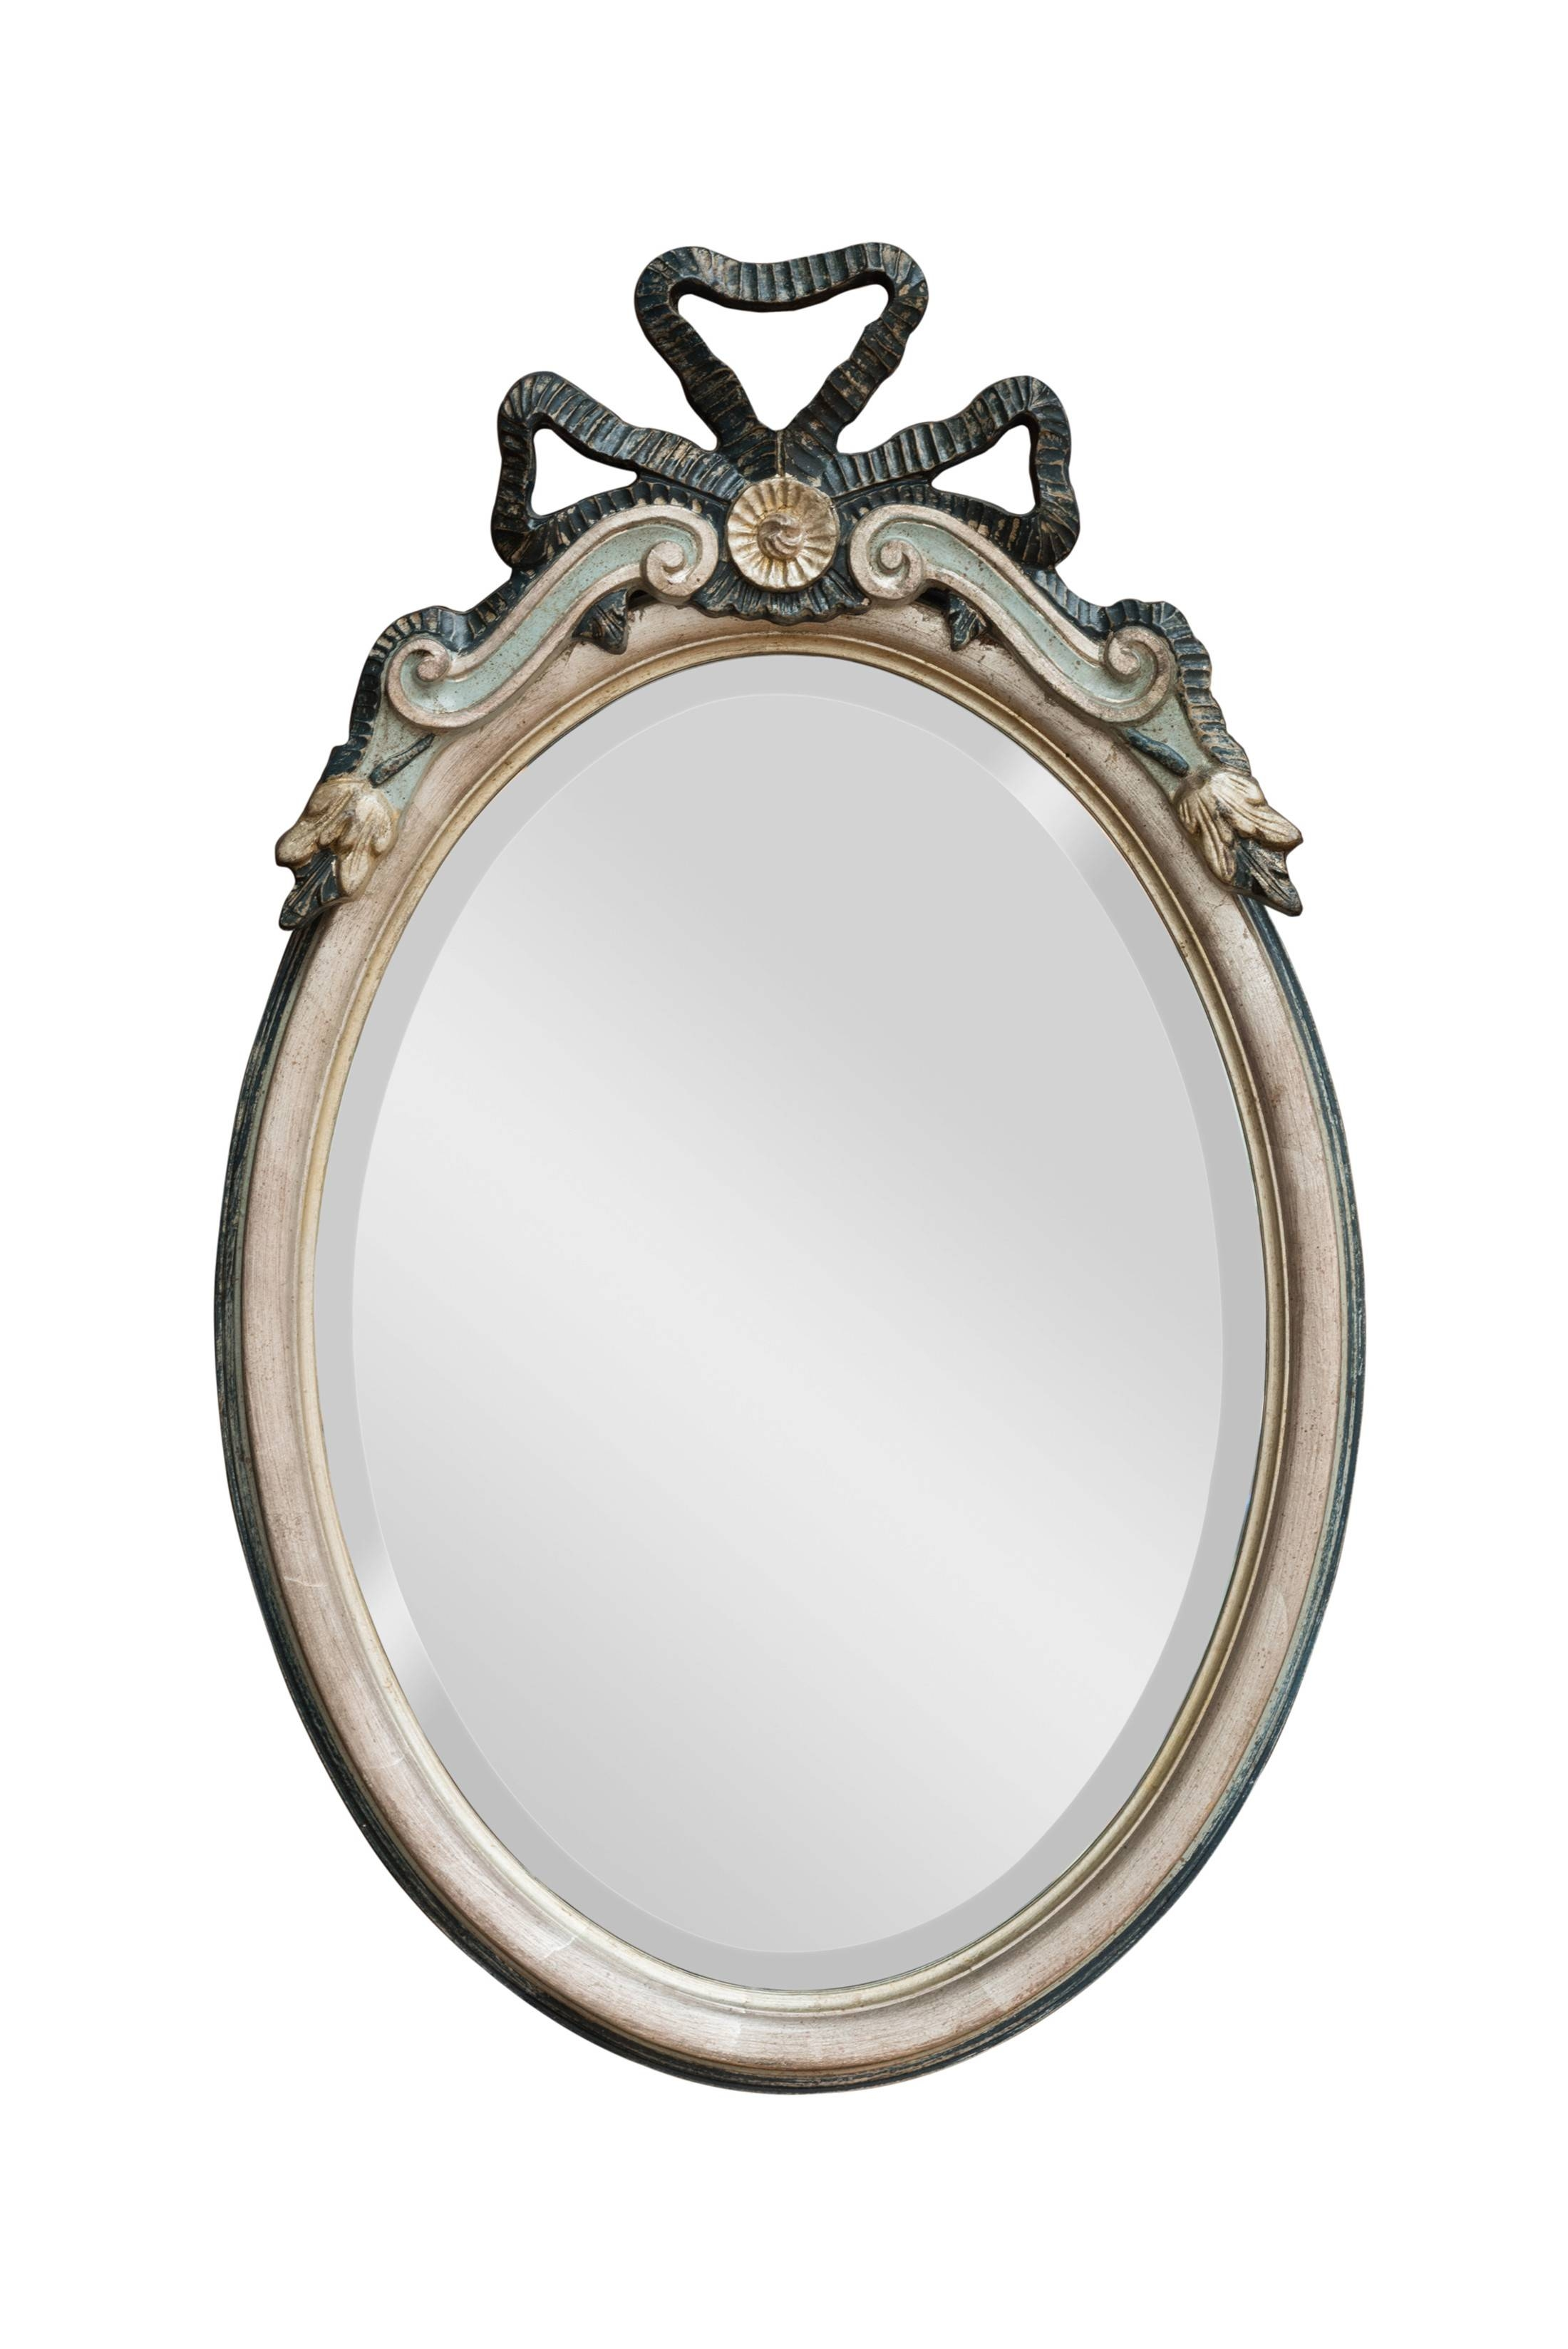 Bow Top Oval Mirror | Hall Mirrors For Sale – Panfili Mirrors Regarding Silver Oval Mirrors (View 6 of 25)